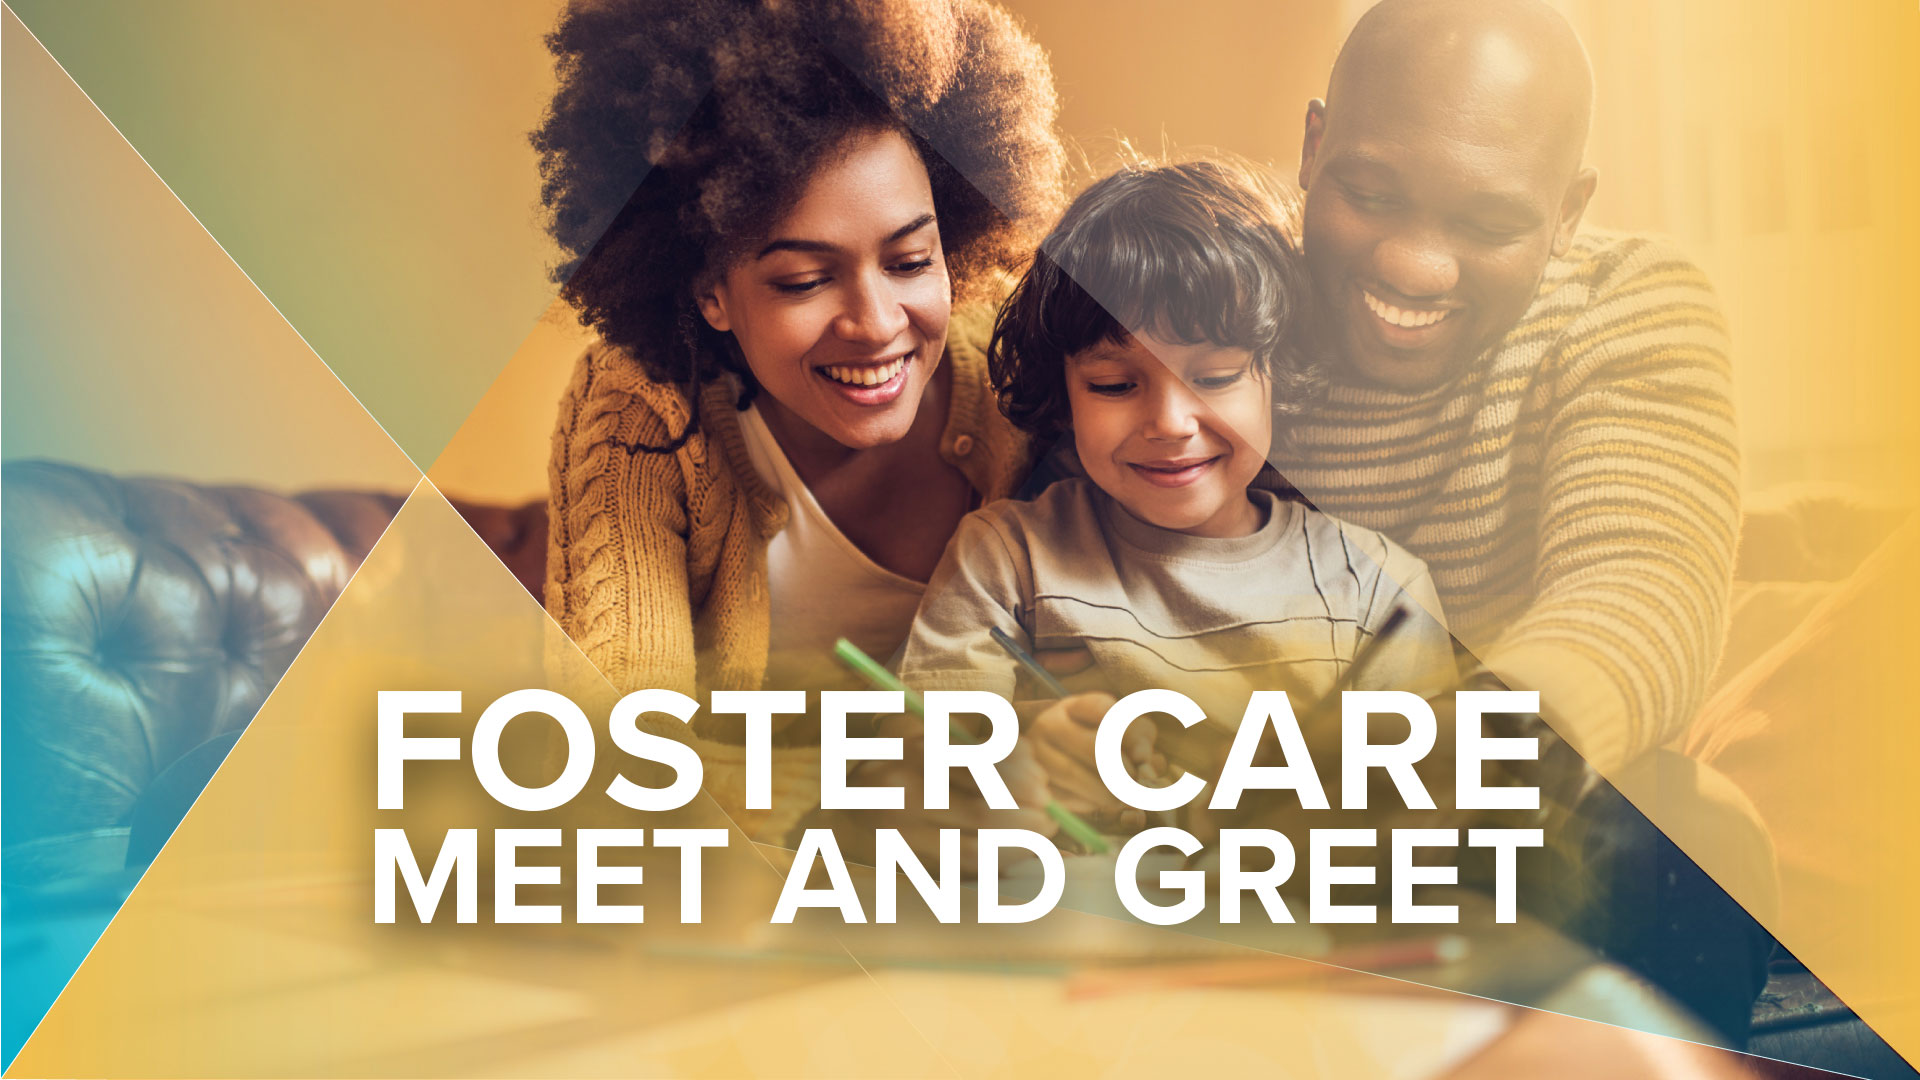 FosterCare.AppEventsGraphic.1920x1080.jpg